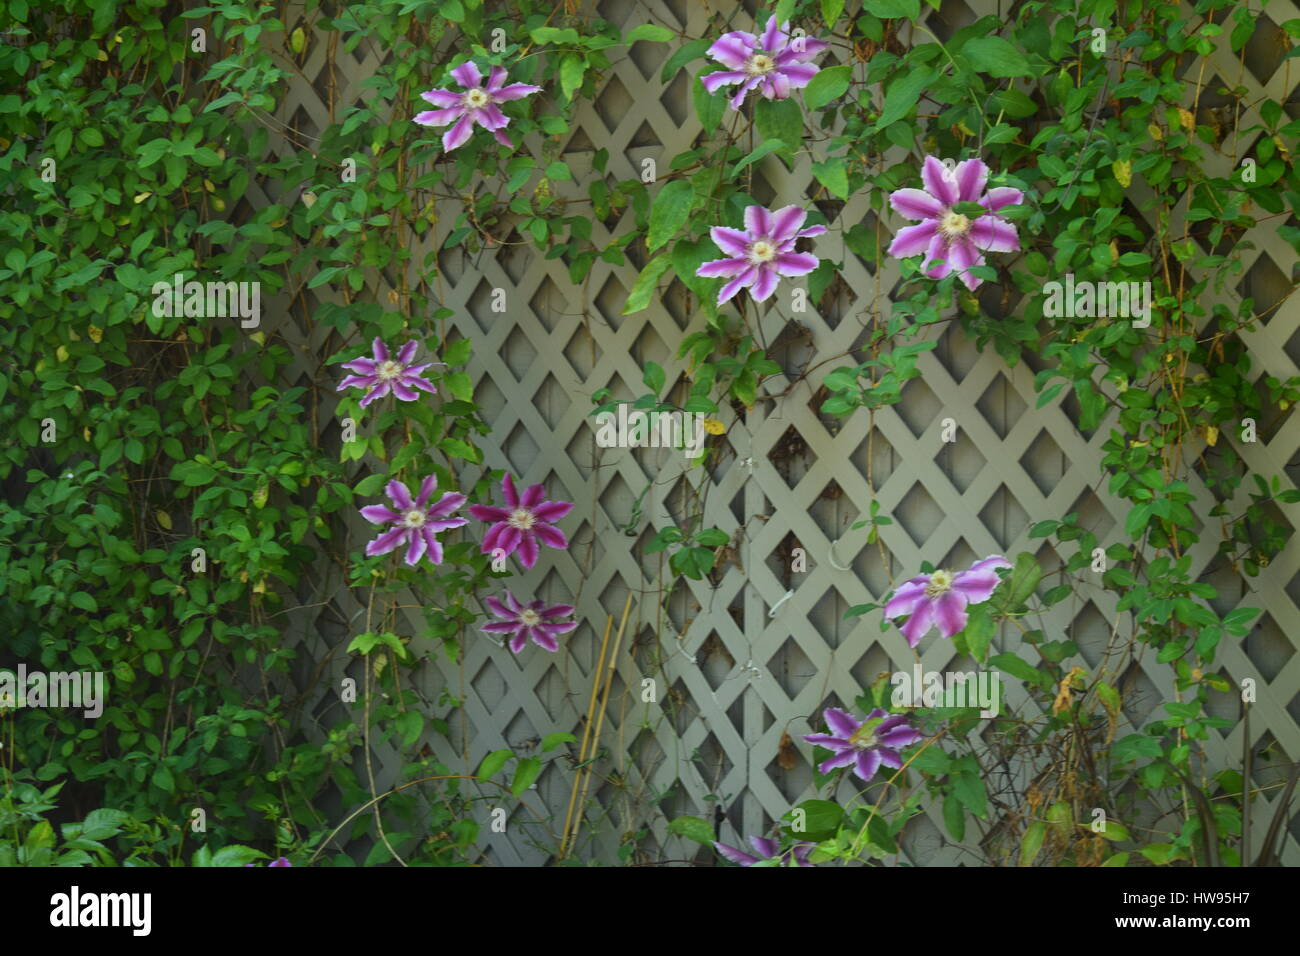 Climbing Trellis Stock Photos Climbing Trellis Stock